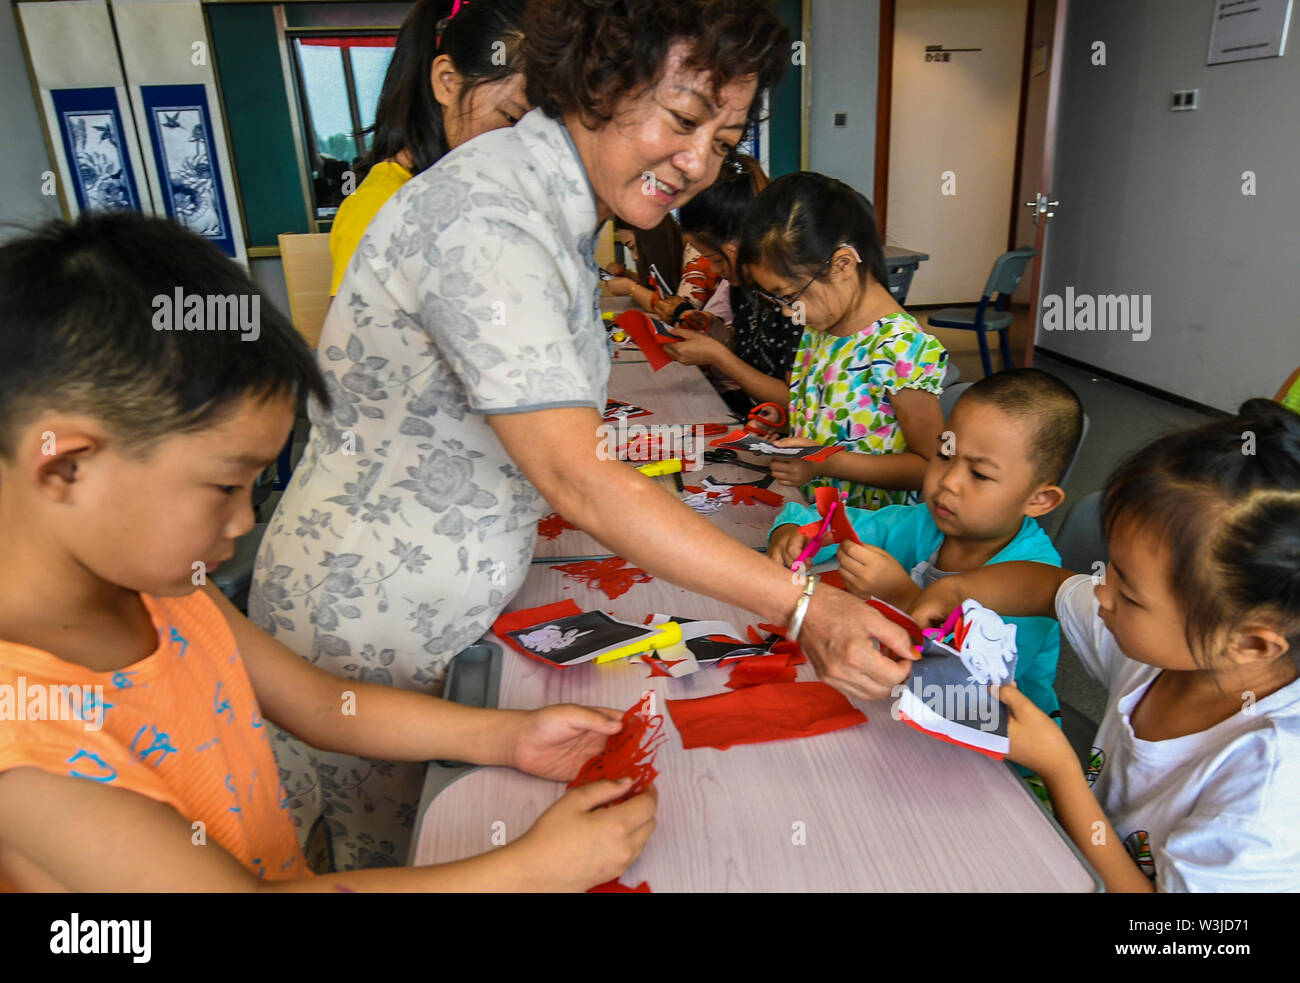 (190716) -- XIANGHE, July 16, 2019 (Xinhua) -- Folk artists instruct children to do paper cutting in Xianghe County, north China's Hebei Province, July 16, 2019. The activity was organized by the local government to help children appreciate the traditional culture during their summer vacation. (Xinhua/Li Xiaoguo) - Stock Image